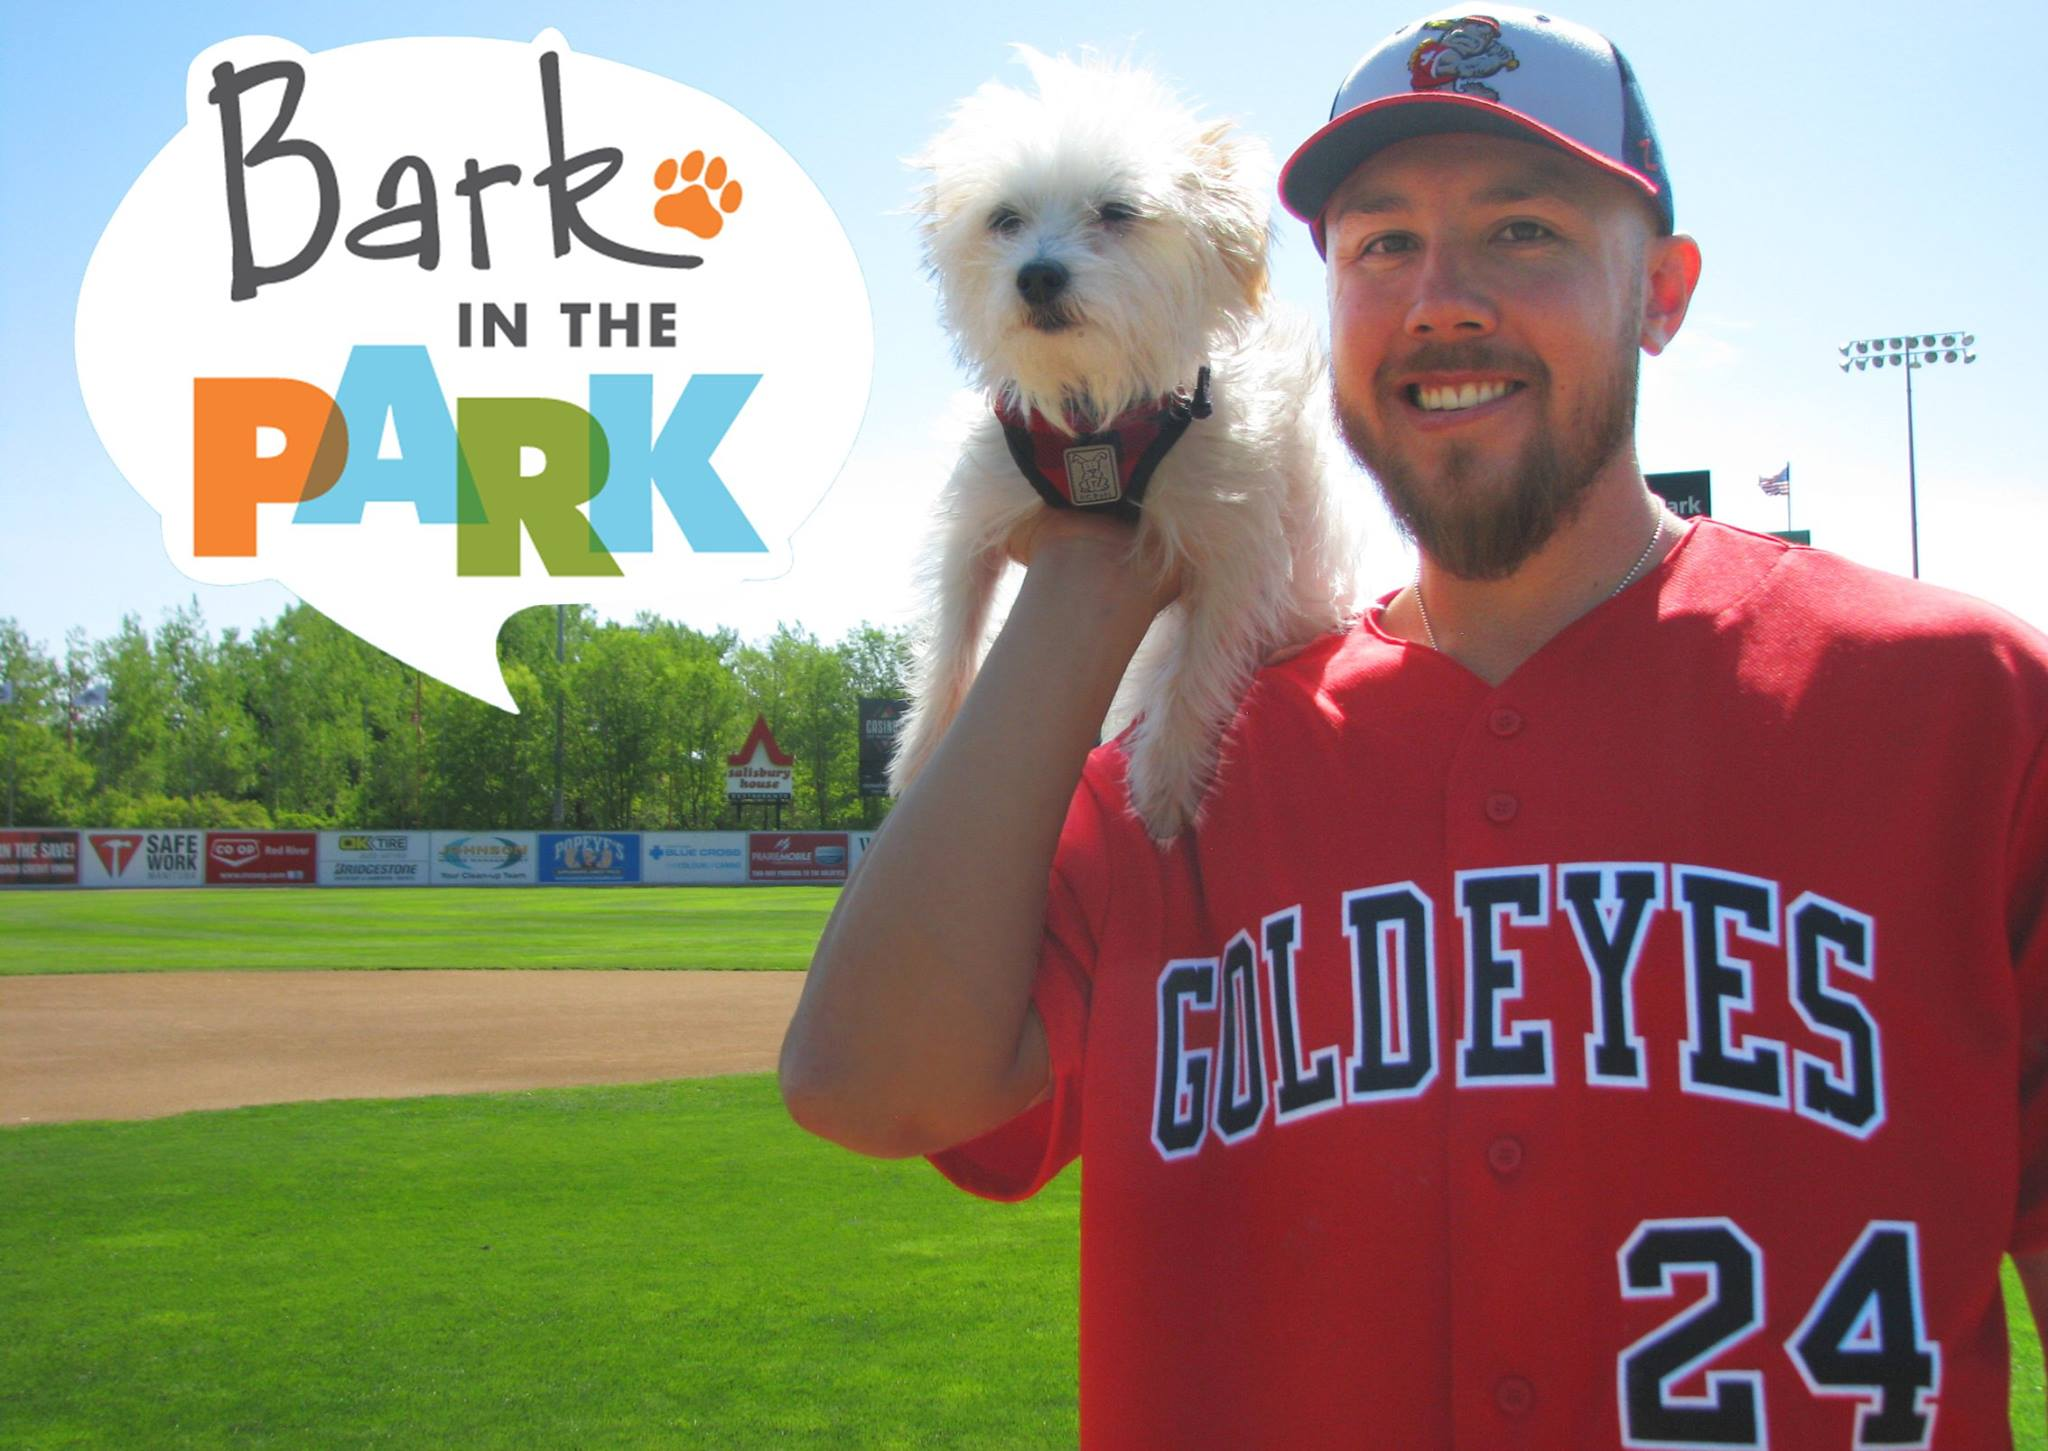 Goldeyes Bark in the Park